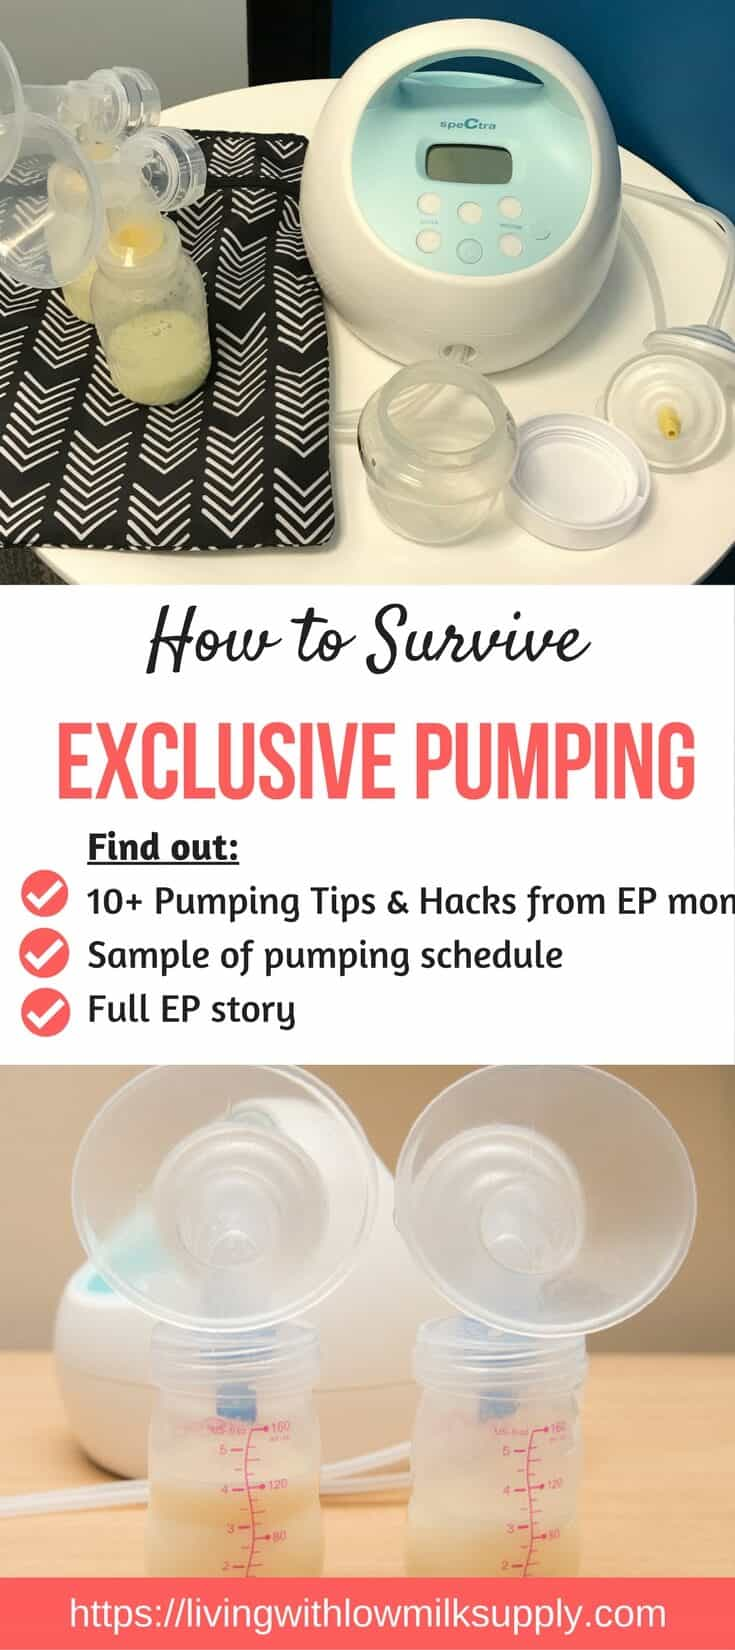 Exclusive Pumping Tips: Are you looking for exclusive pumping tips and hacks? In this article, Kristina shared her top pumping tips plus exclusive pumping schedule